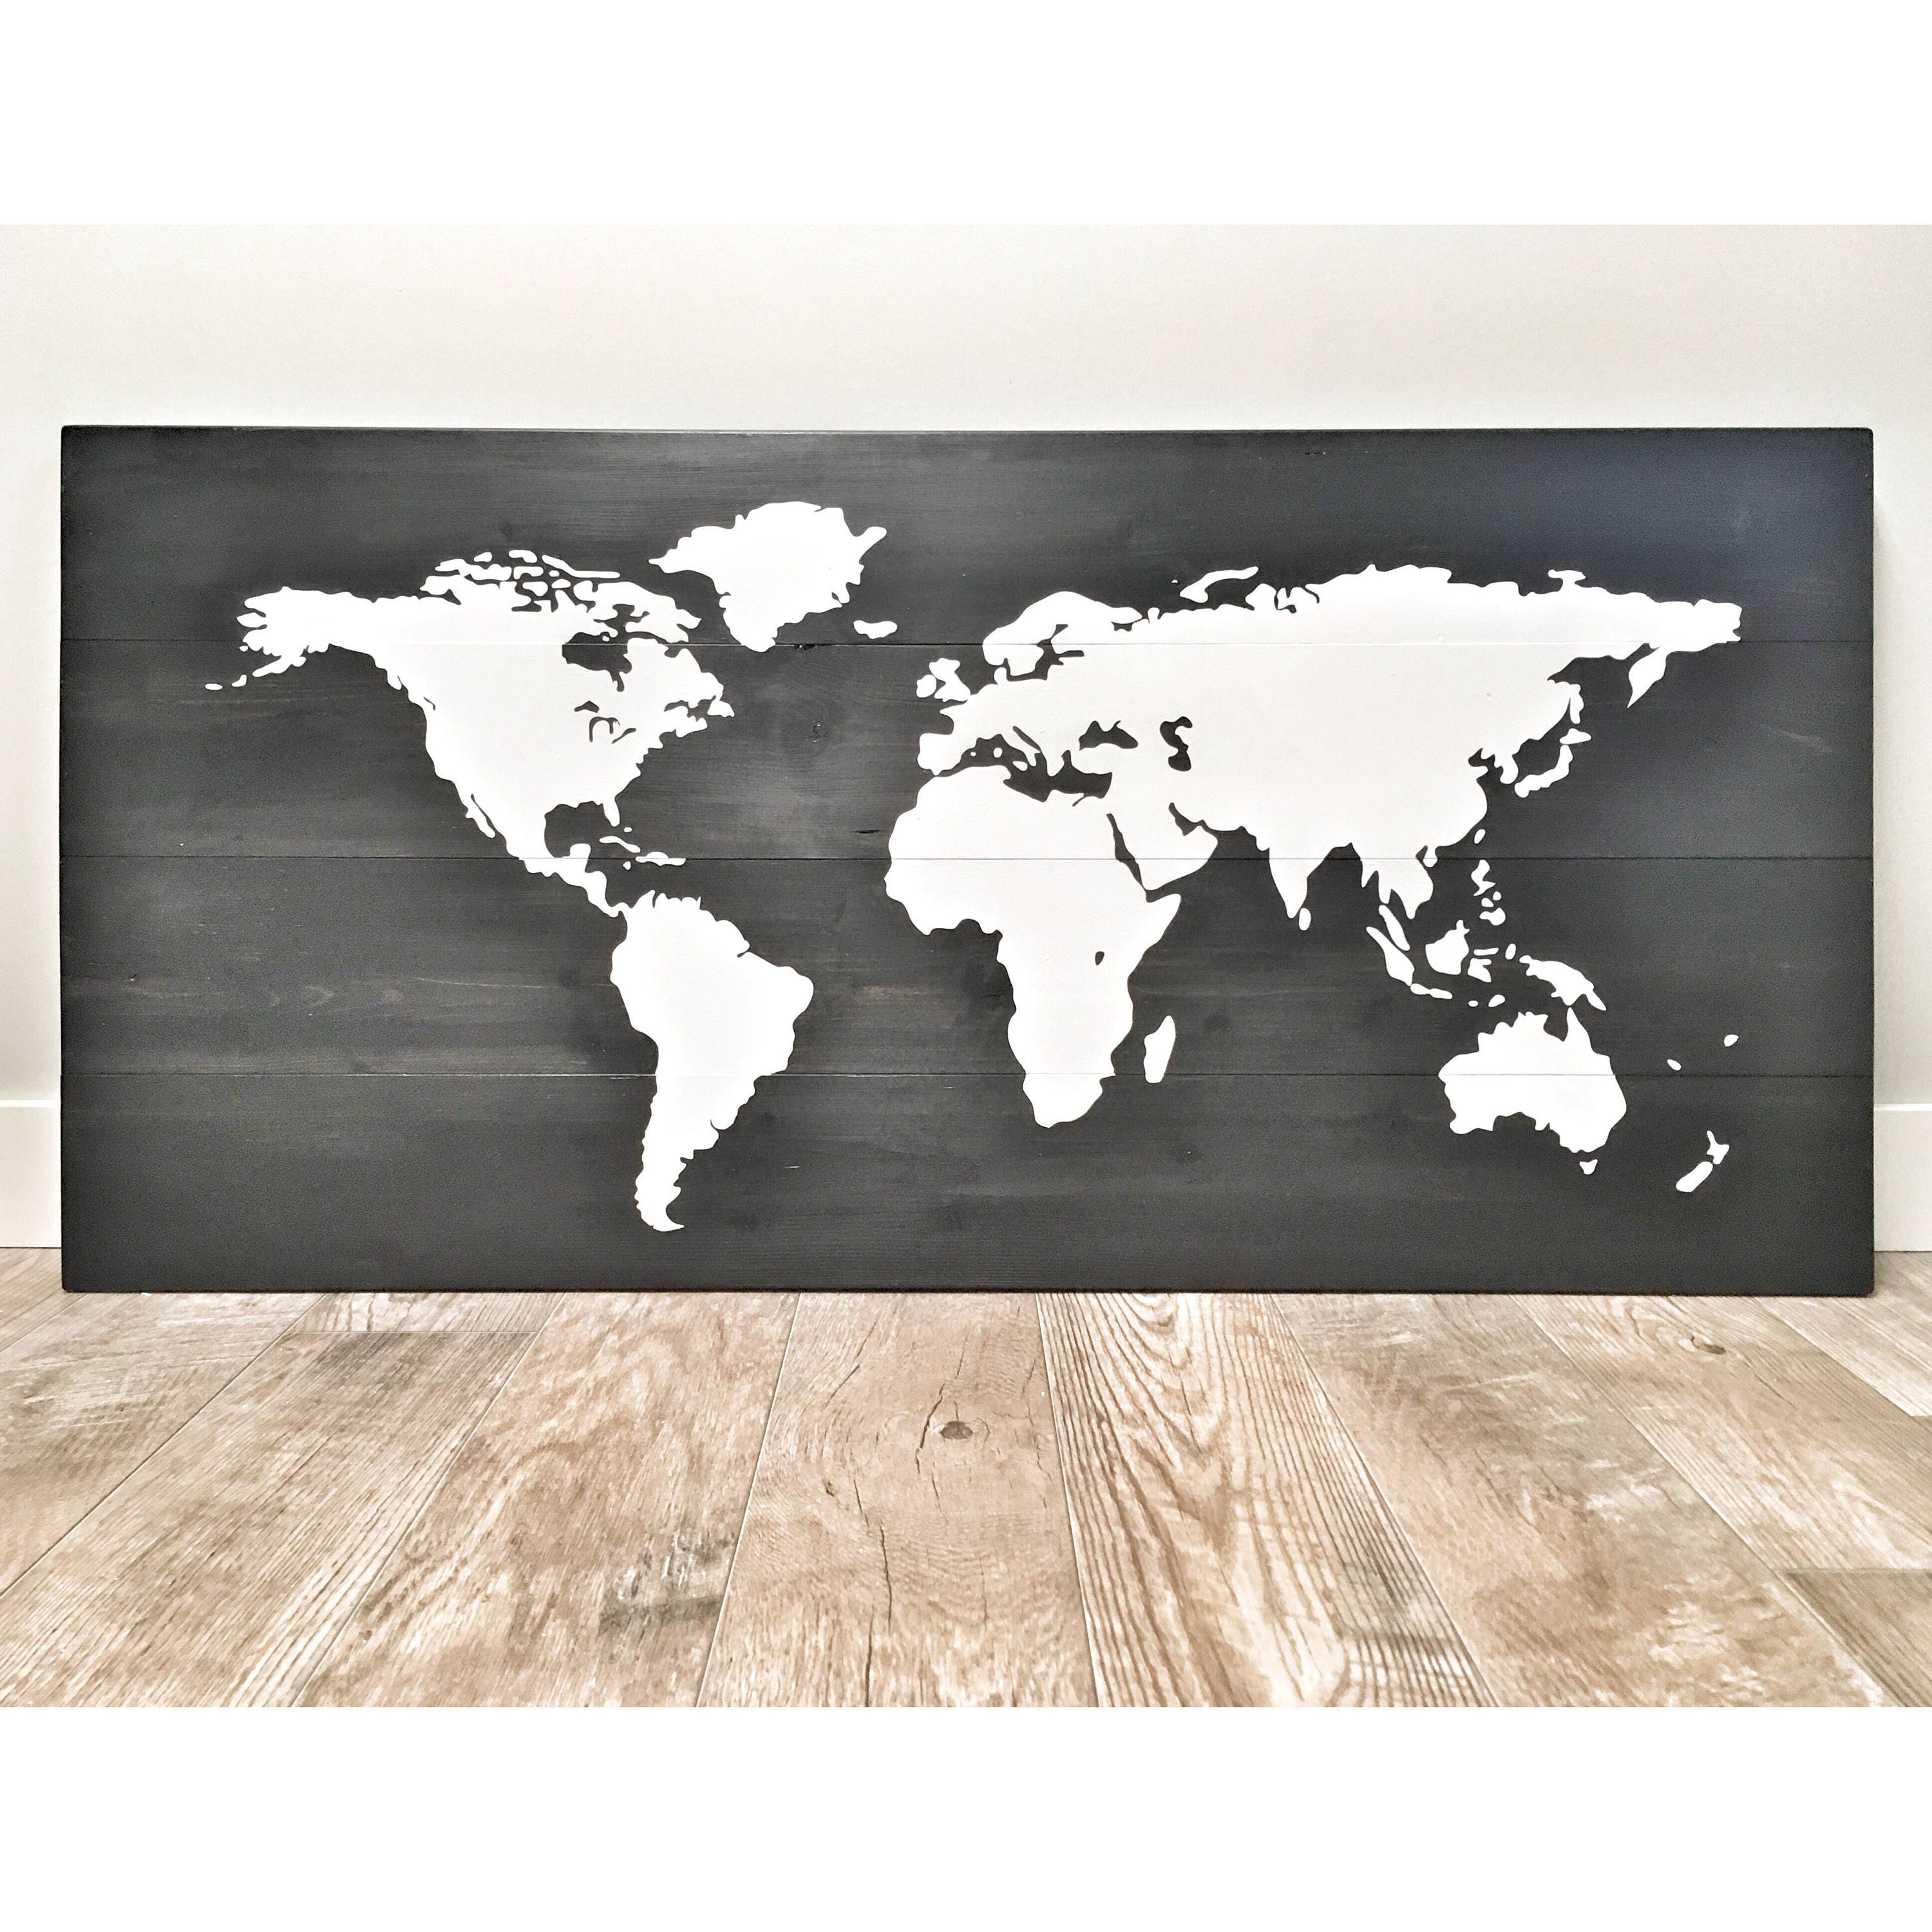 Huge large rustic wood world map rustic decor farmhouse decor huge large rustic wood world map rustic decor farmhouse decor rustic nursery decor wall decor wooden white world map 46 x 22 gumiabroncs Choice Image